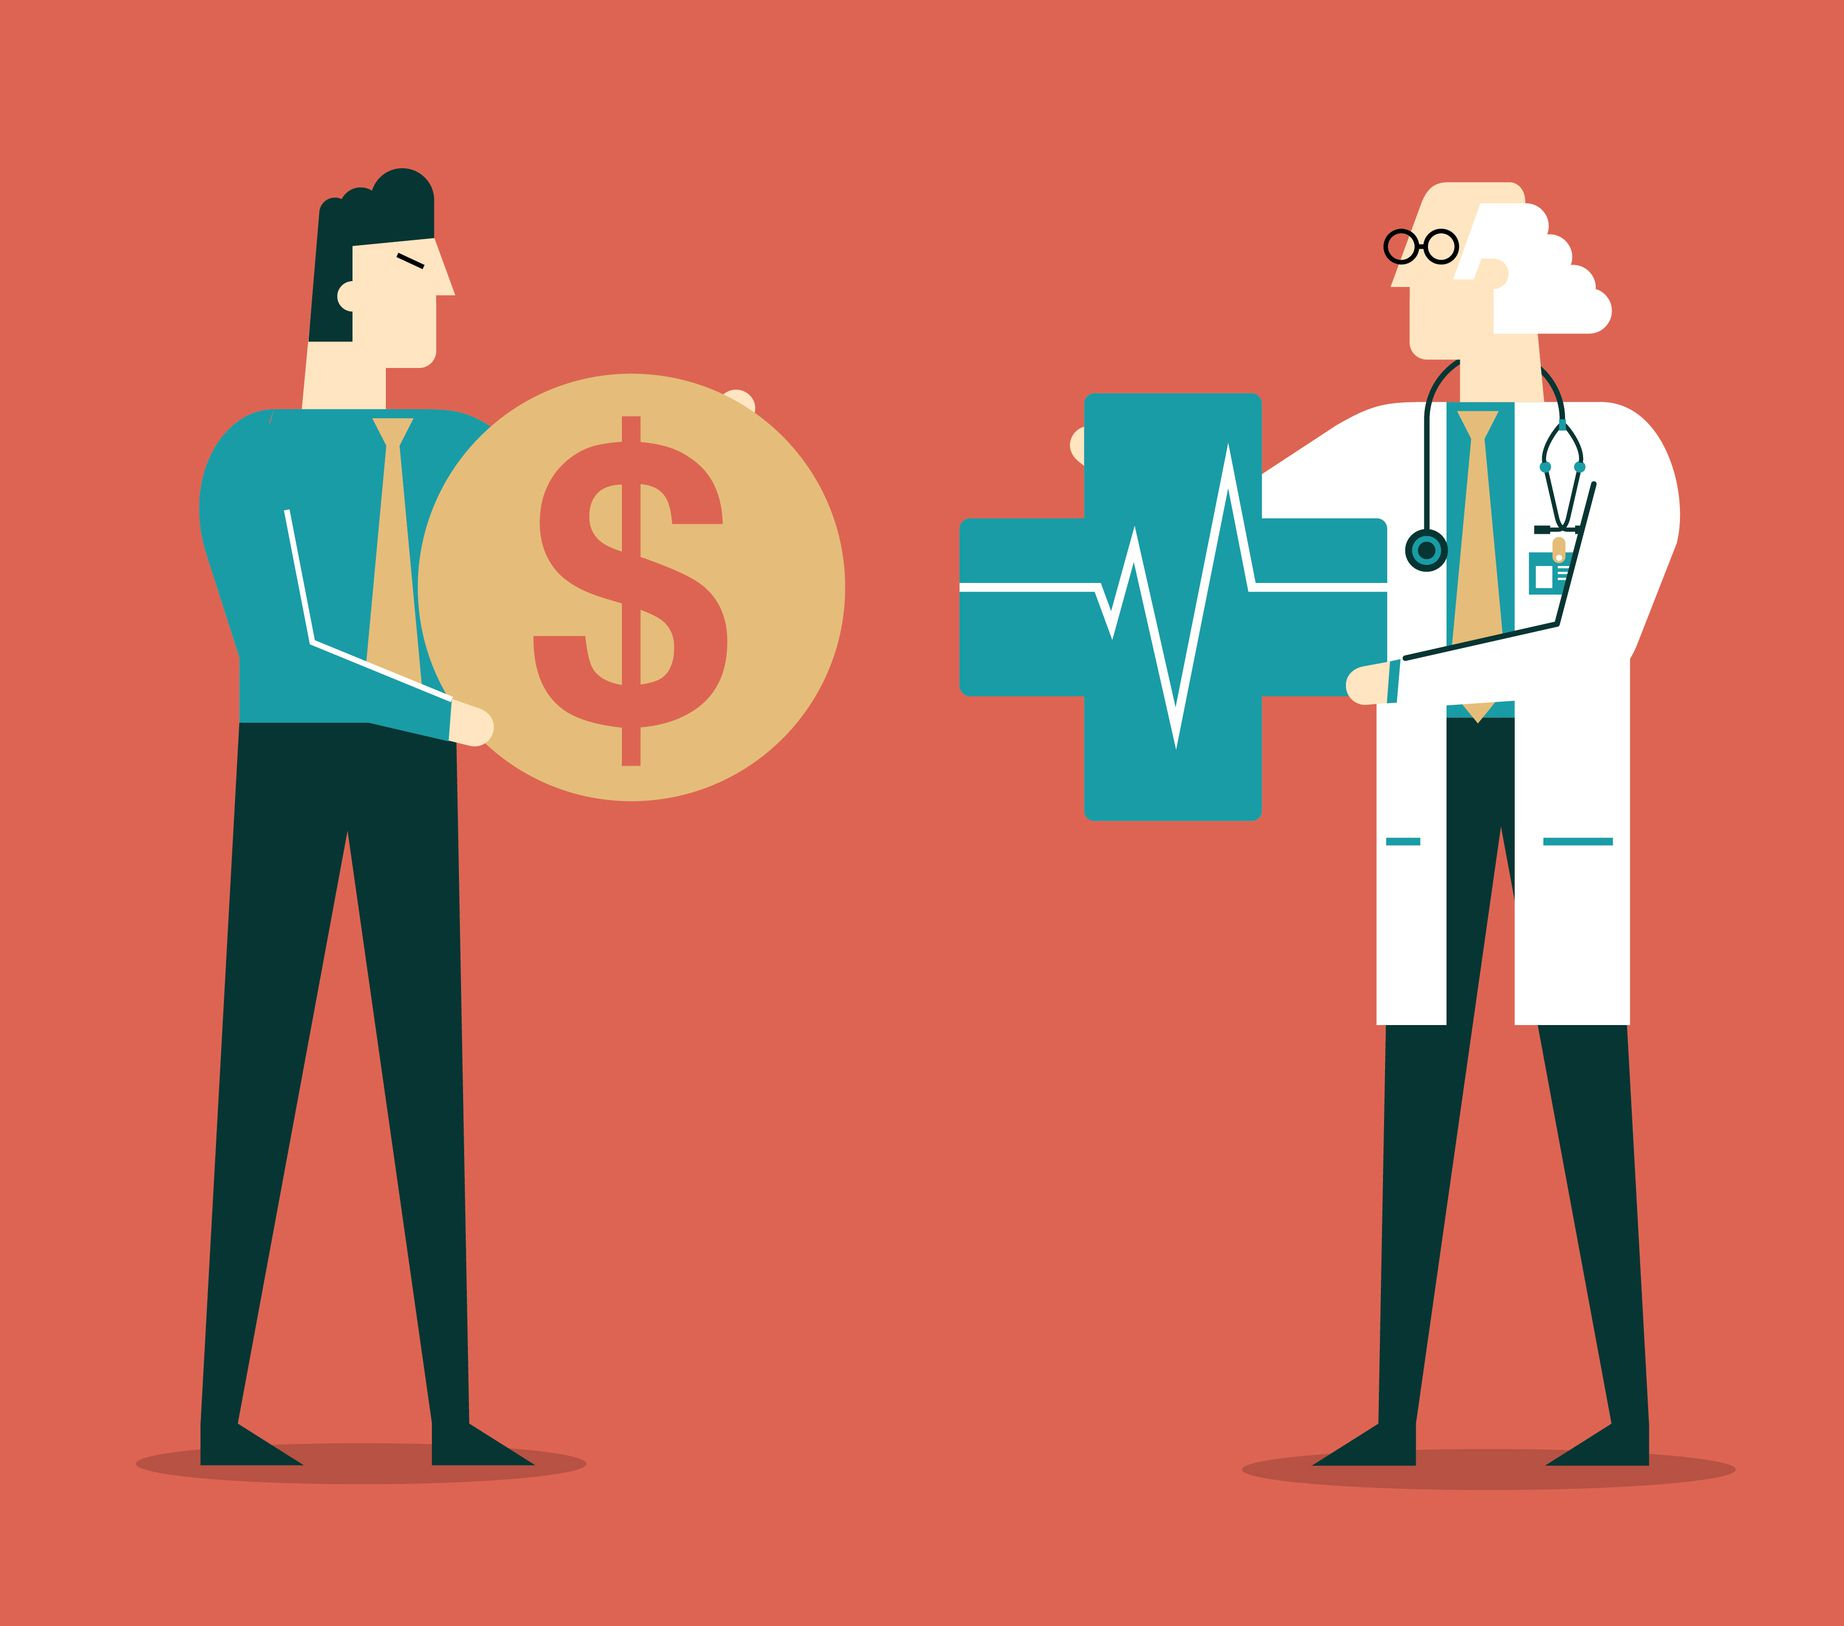 Health Care Inequality: Facts, Causes, Solutions